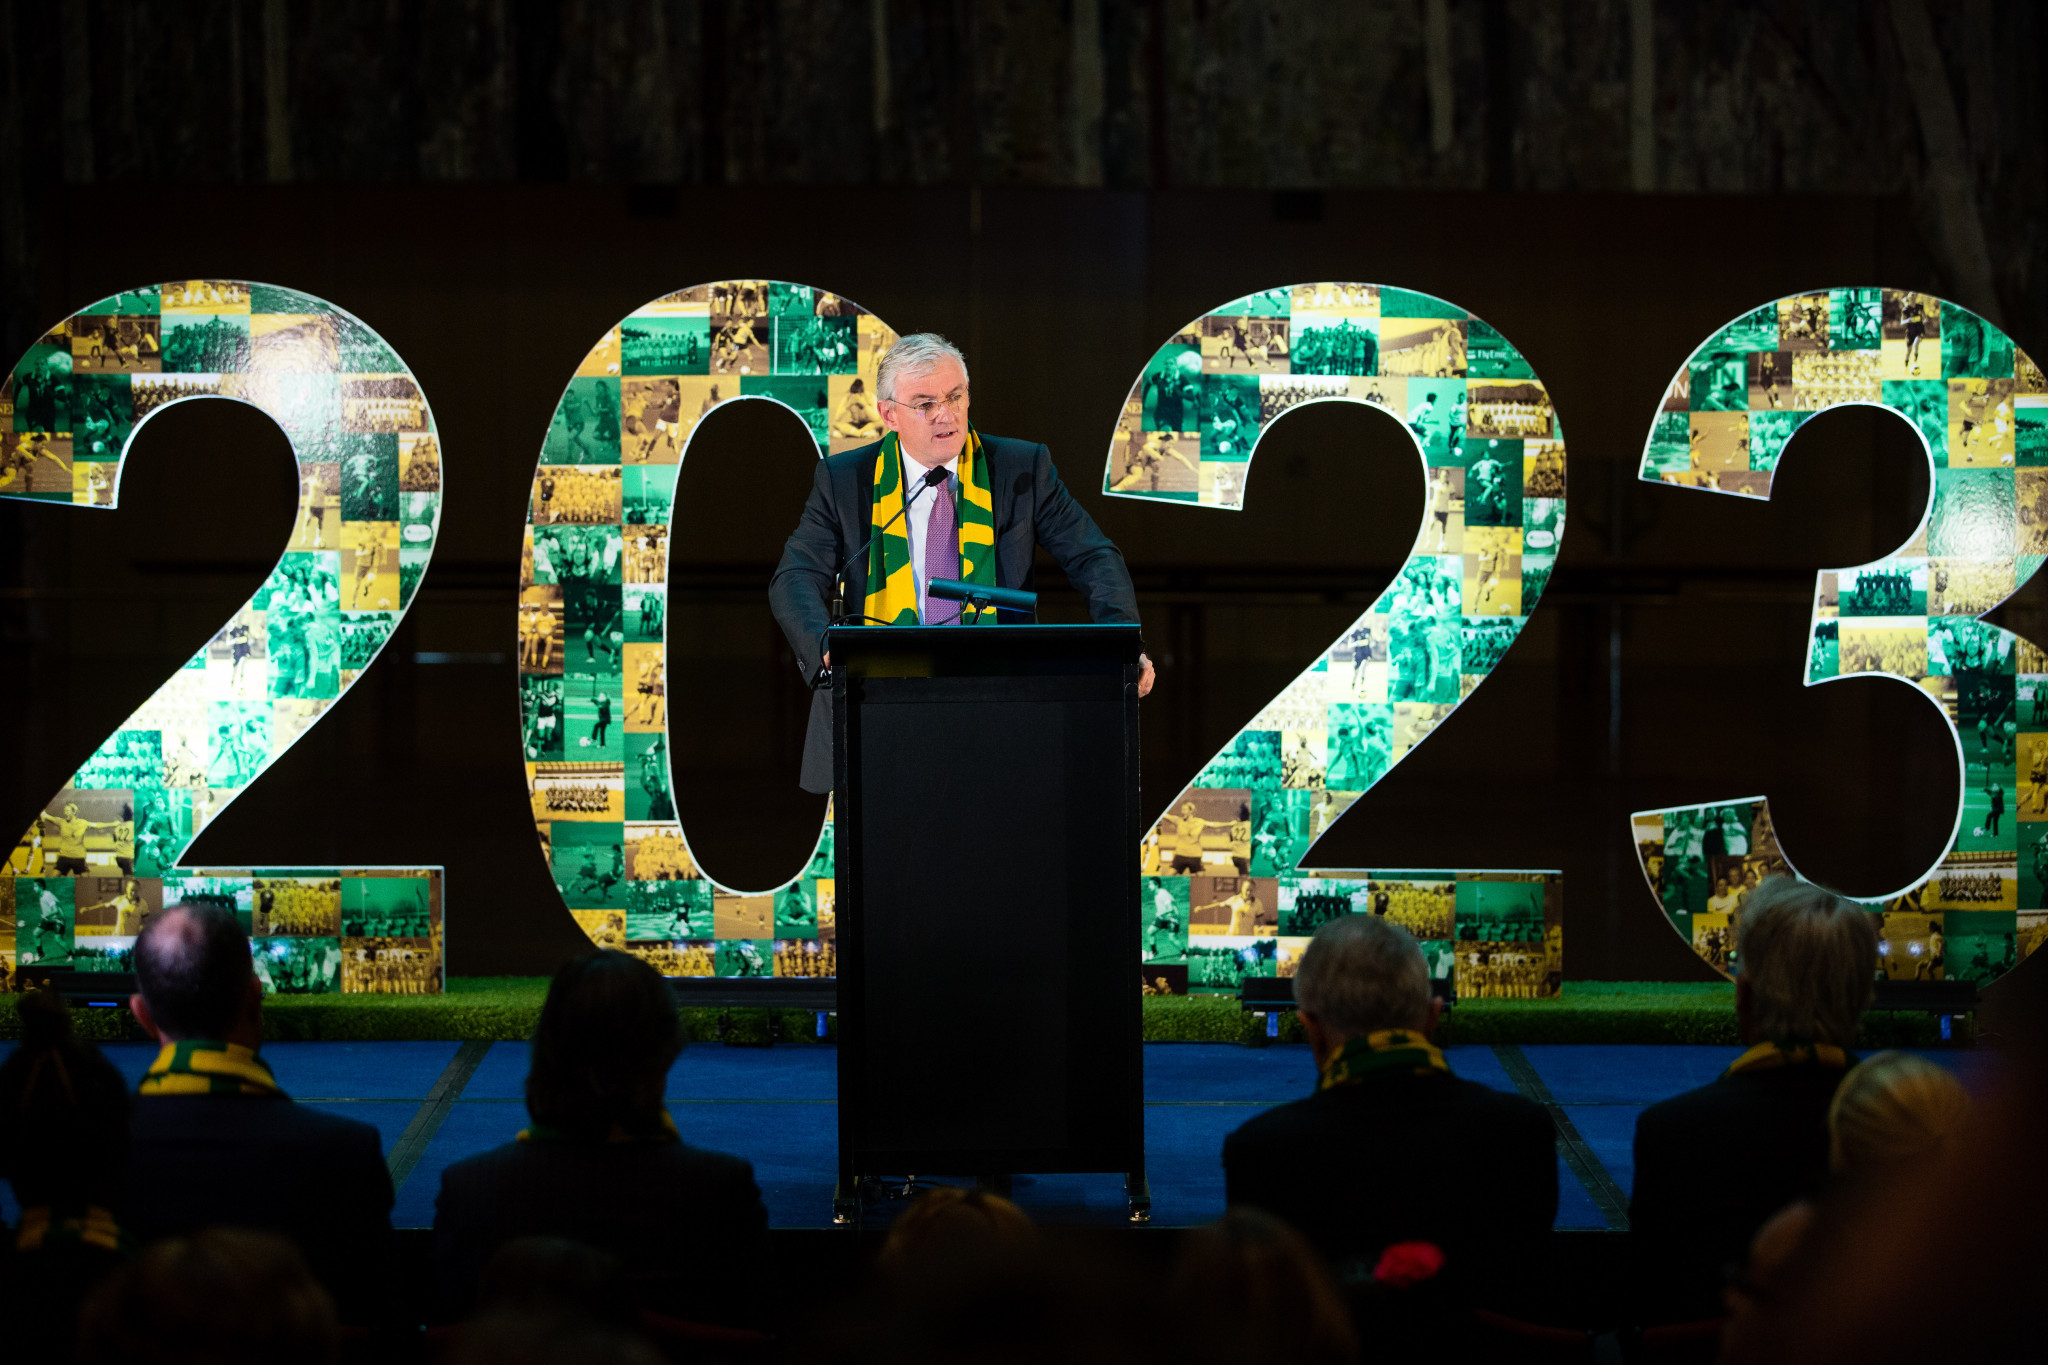 Australia are bidding to host the 2023 FIFA Women's World Cup ©Getty Images